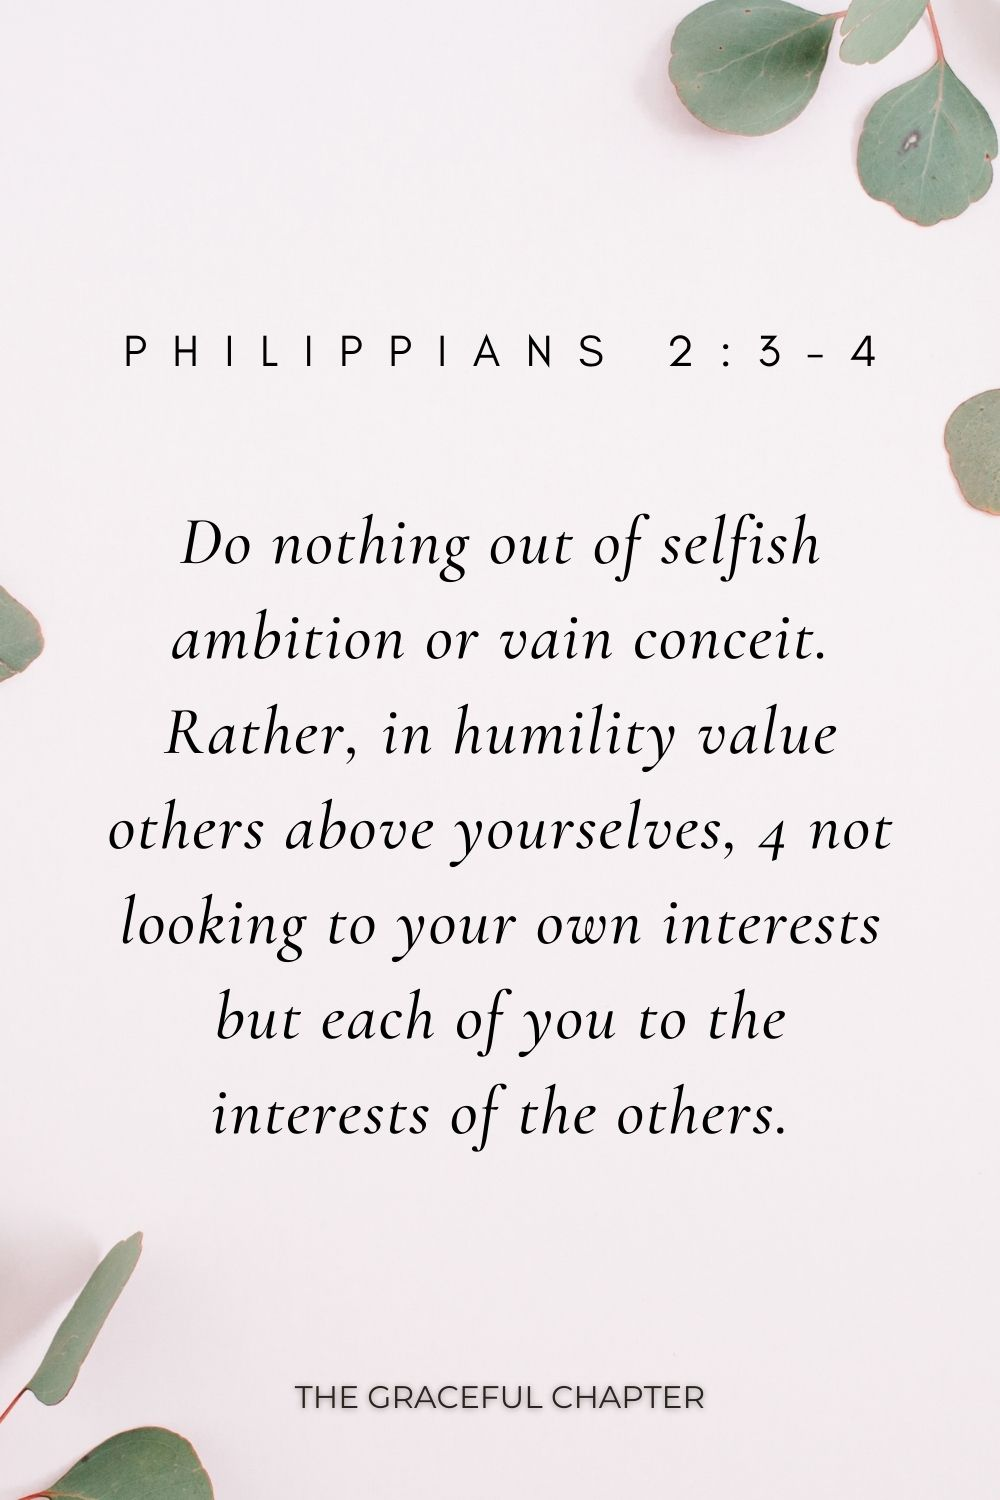 Do nothing out of selfish ambition or vain conceit. Rather, in humility value others above yourselves, 4 not looking to your own interests but each of you to the interests of the others. Philippians 2:3-4